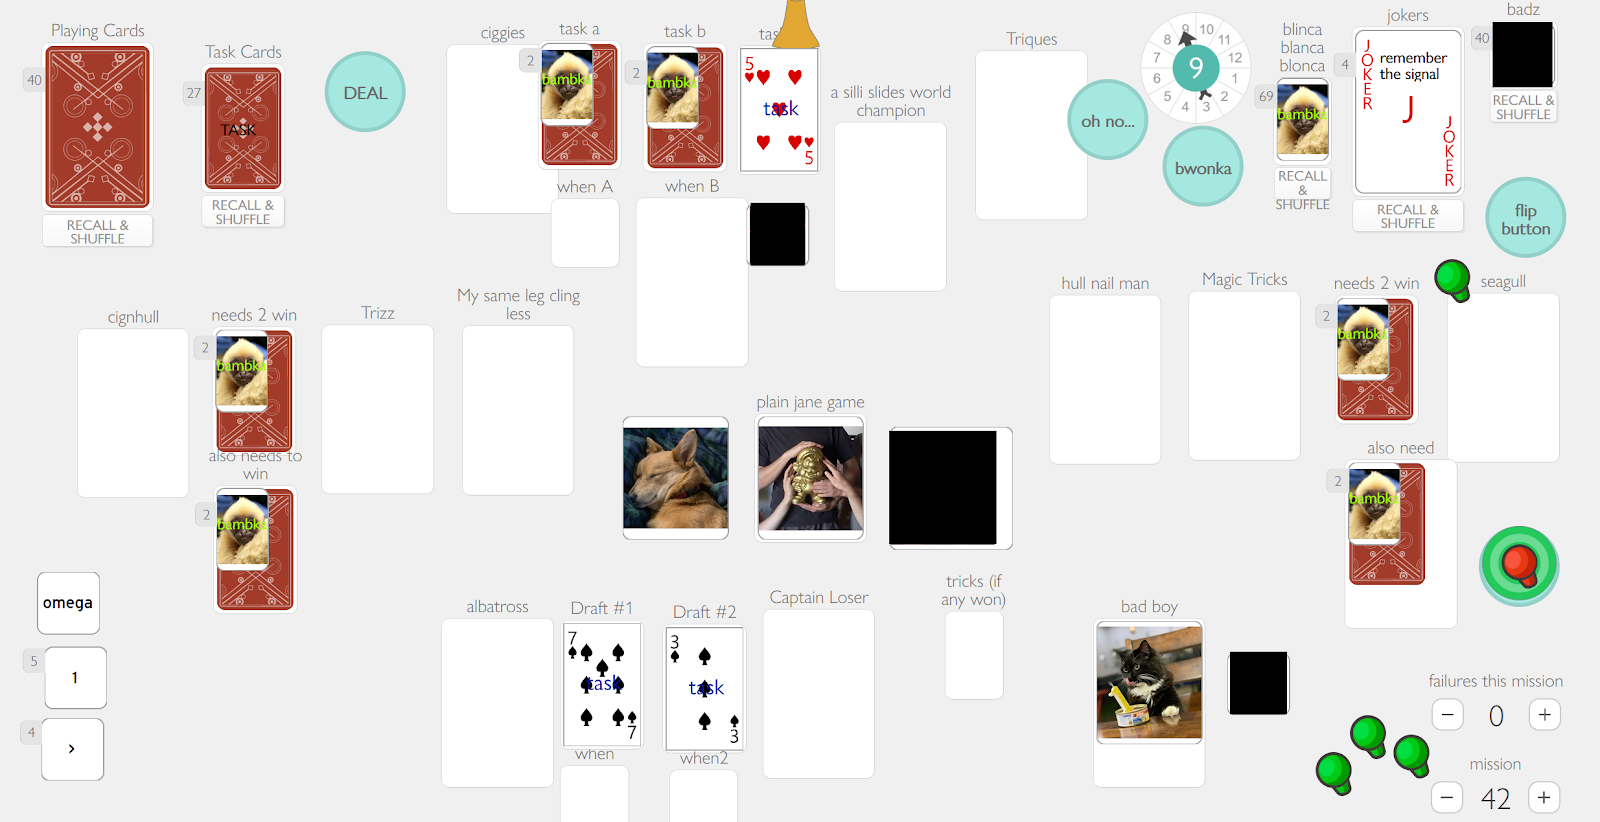 A screenshot of a custom game of The Crew on playingcards.io. The virtual tabletop is filled with cards, images, labels, tokens, many labeled with incomprehensible text labels.